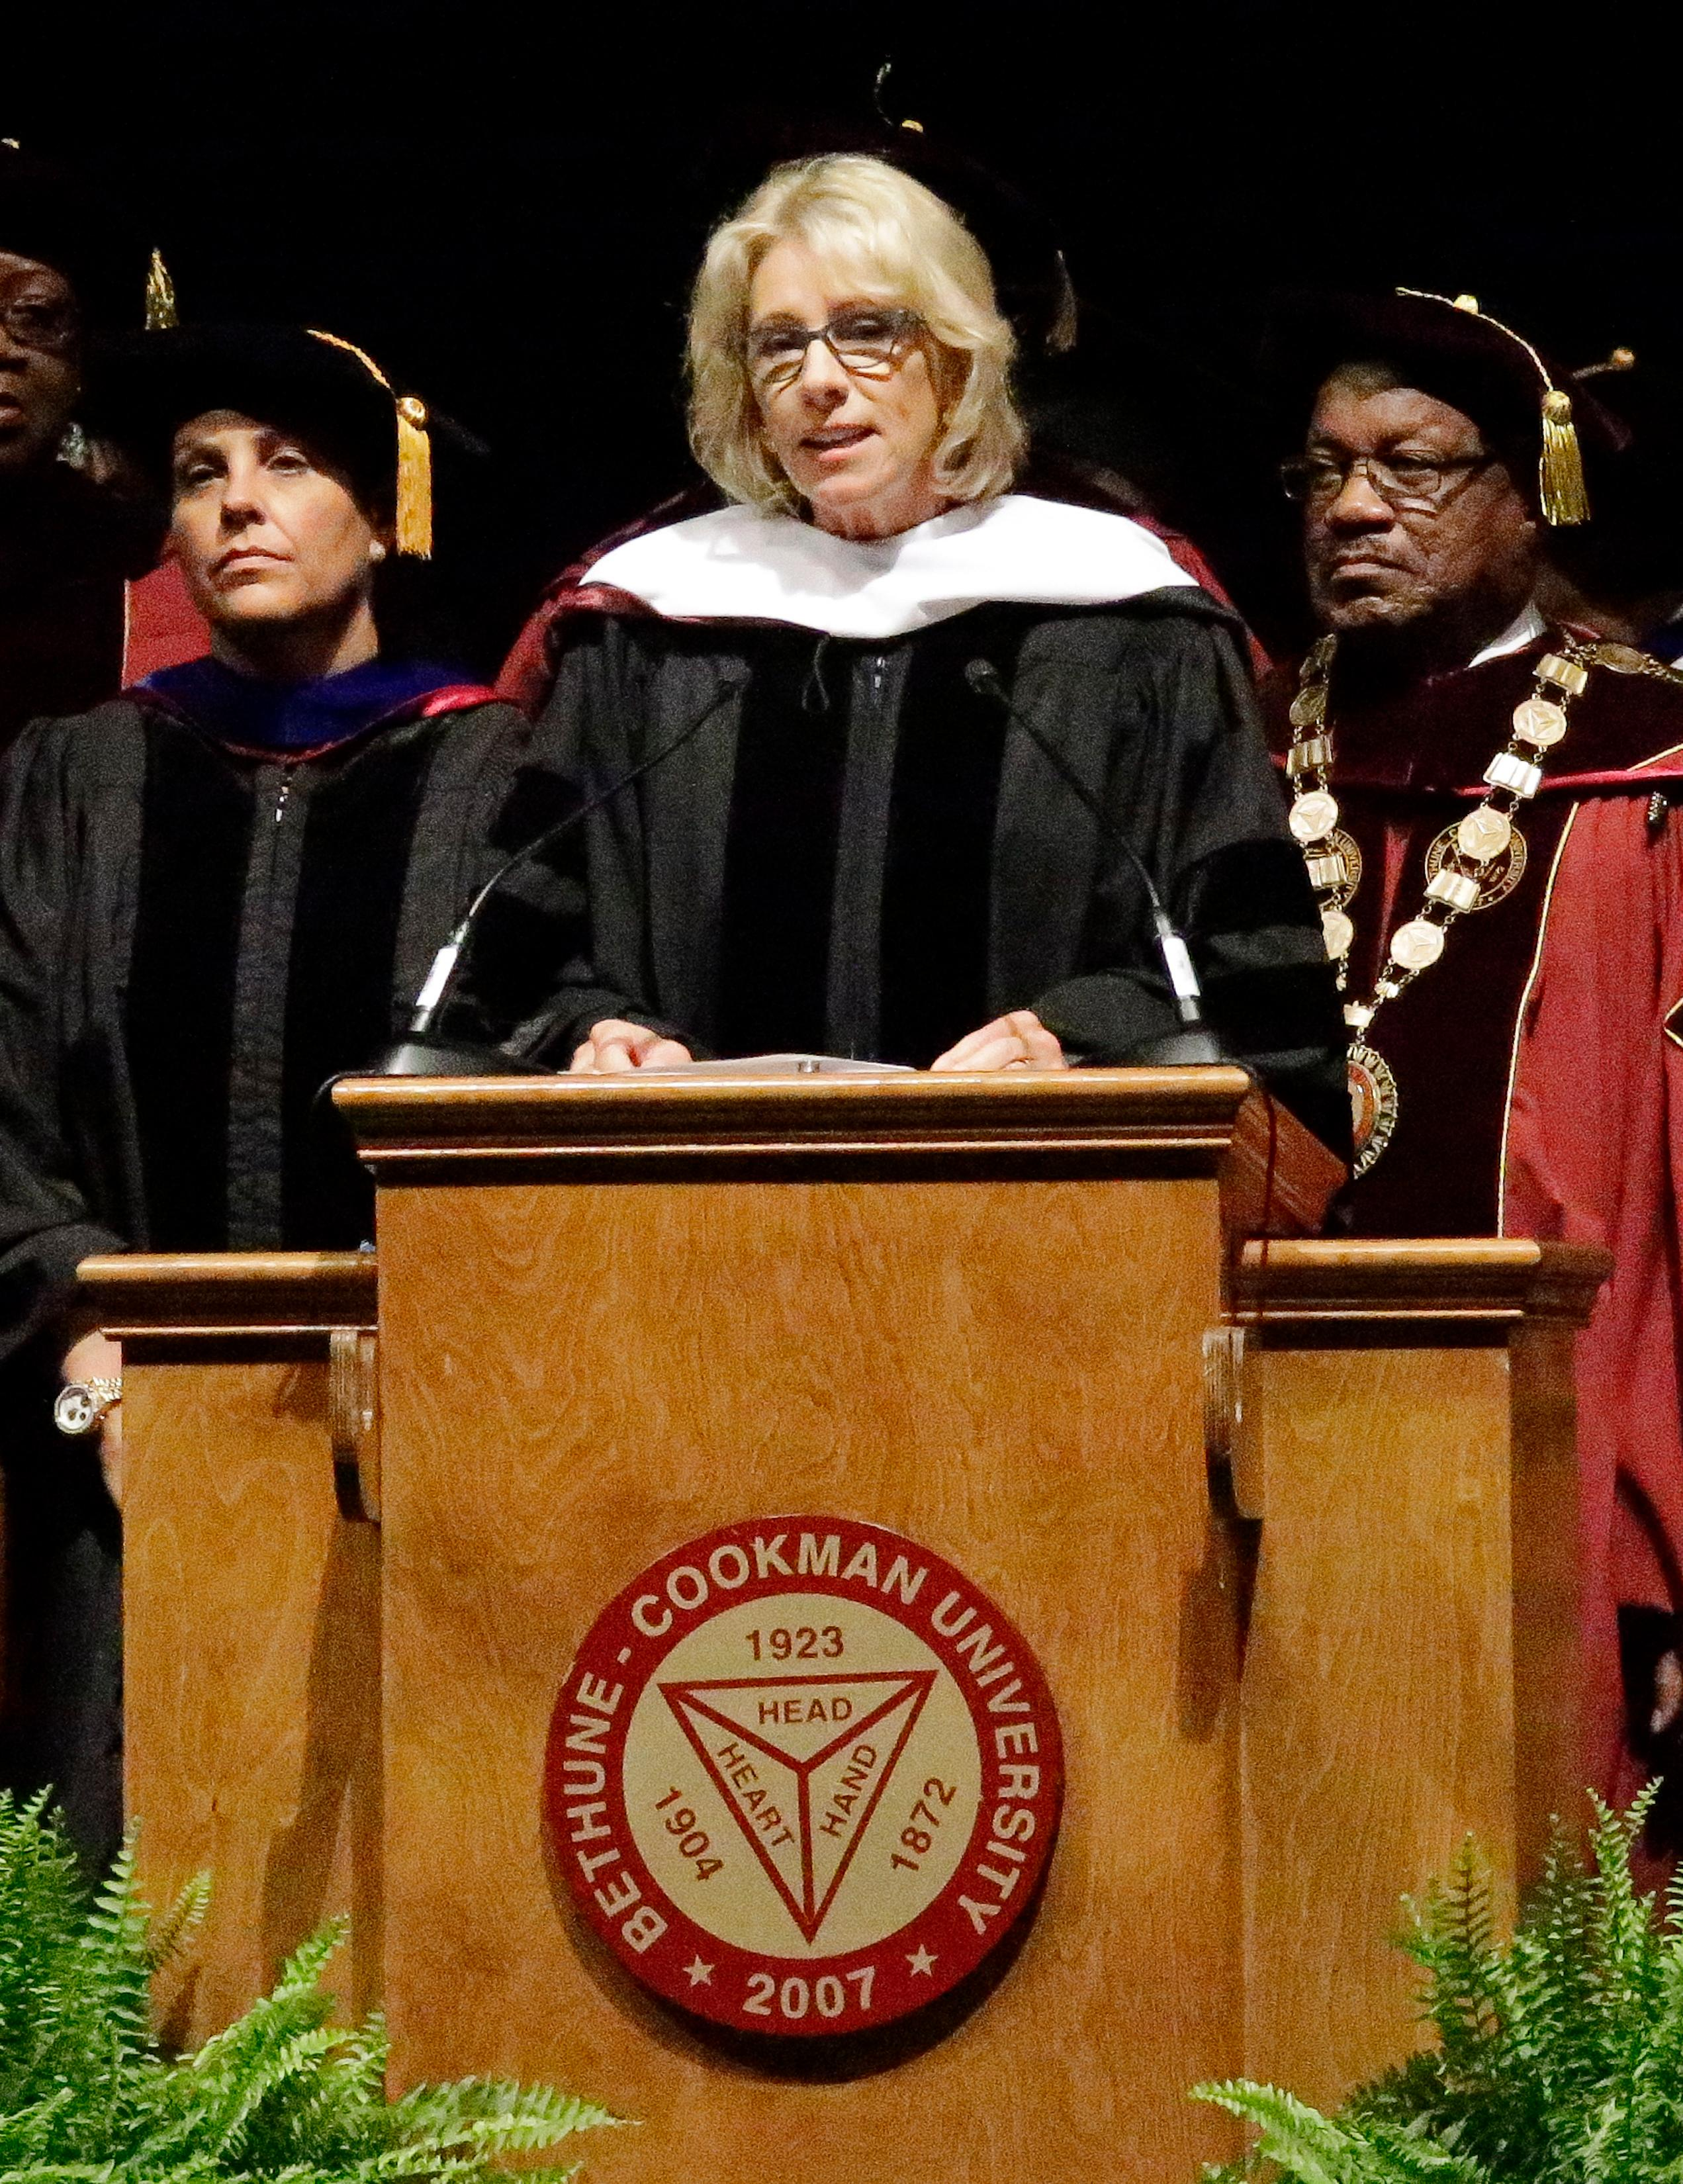 United States Secretary of Education Betsy DeVos delivers a commencement speech to graduates at Bethune-Cookman University, Wednesday, May 10, 2017, in Daytona Beach, Fla. (AP Photo/John Raoux)